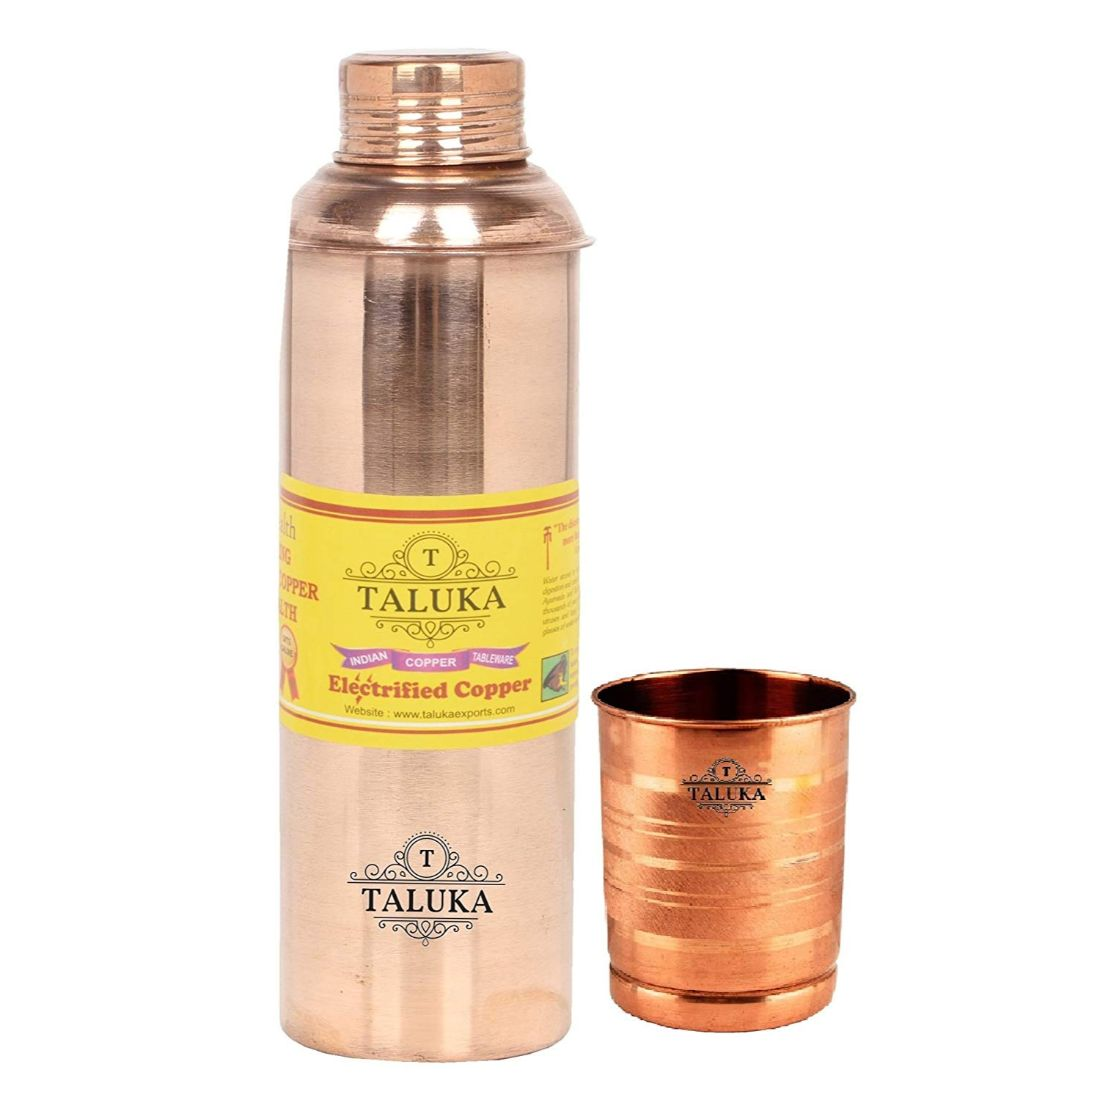 Handmade Copper Water Bottle 800 ML & 1 PC Glass Tumbler 300 ML Each- Travel Bottle Storage Water Tableware